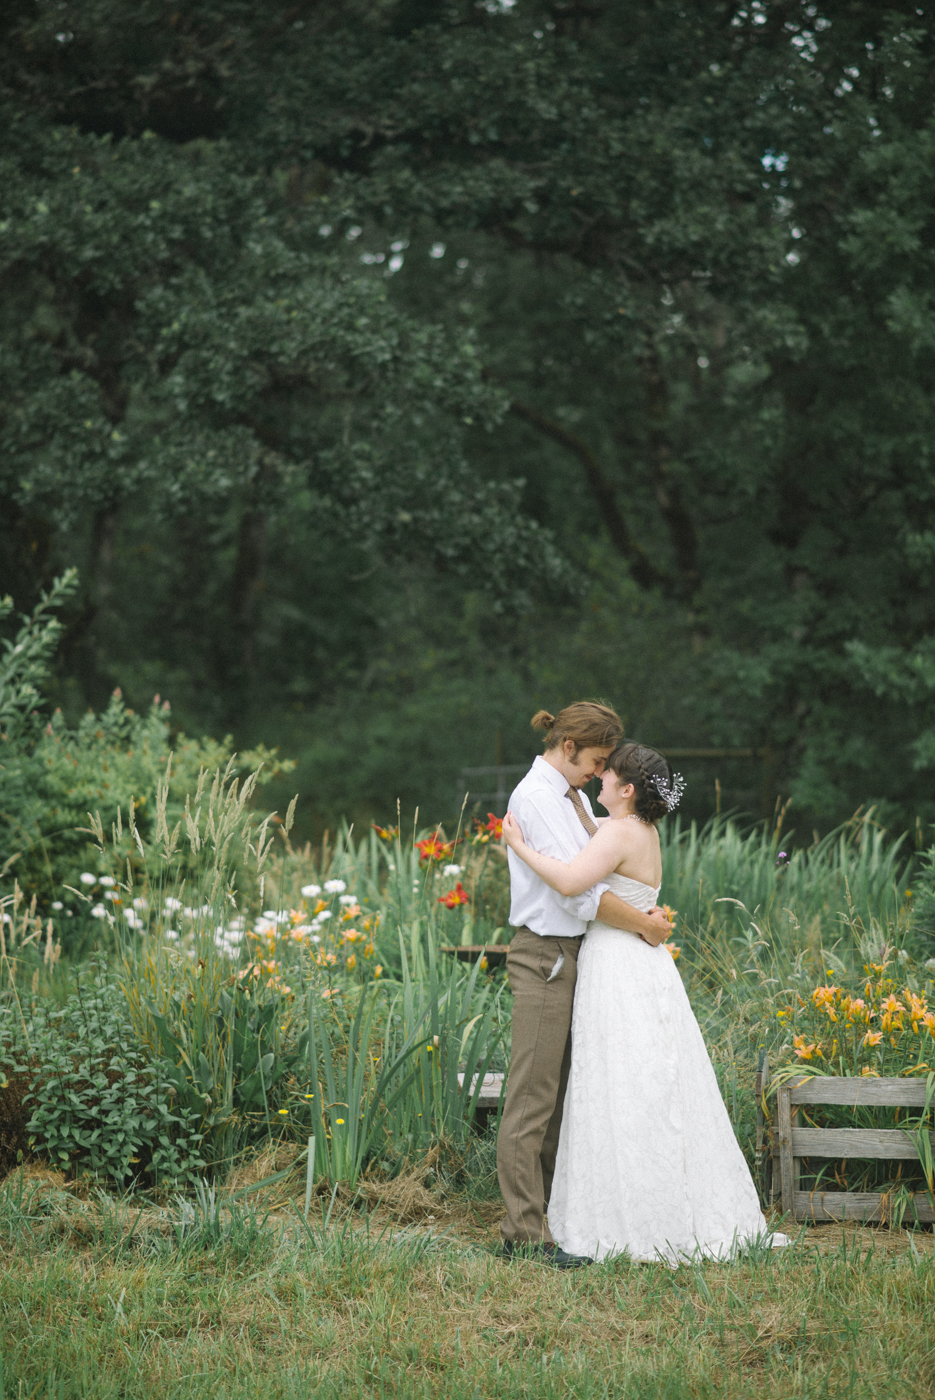 Dorris-Ranch-Wedding-Springfield-Oregon-Shelley-Marie-Photo-5